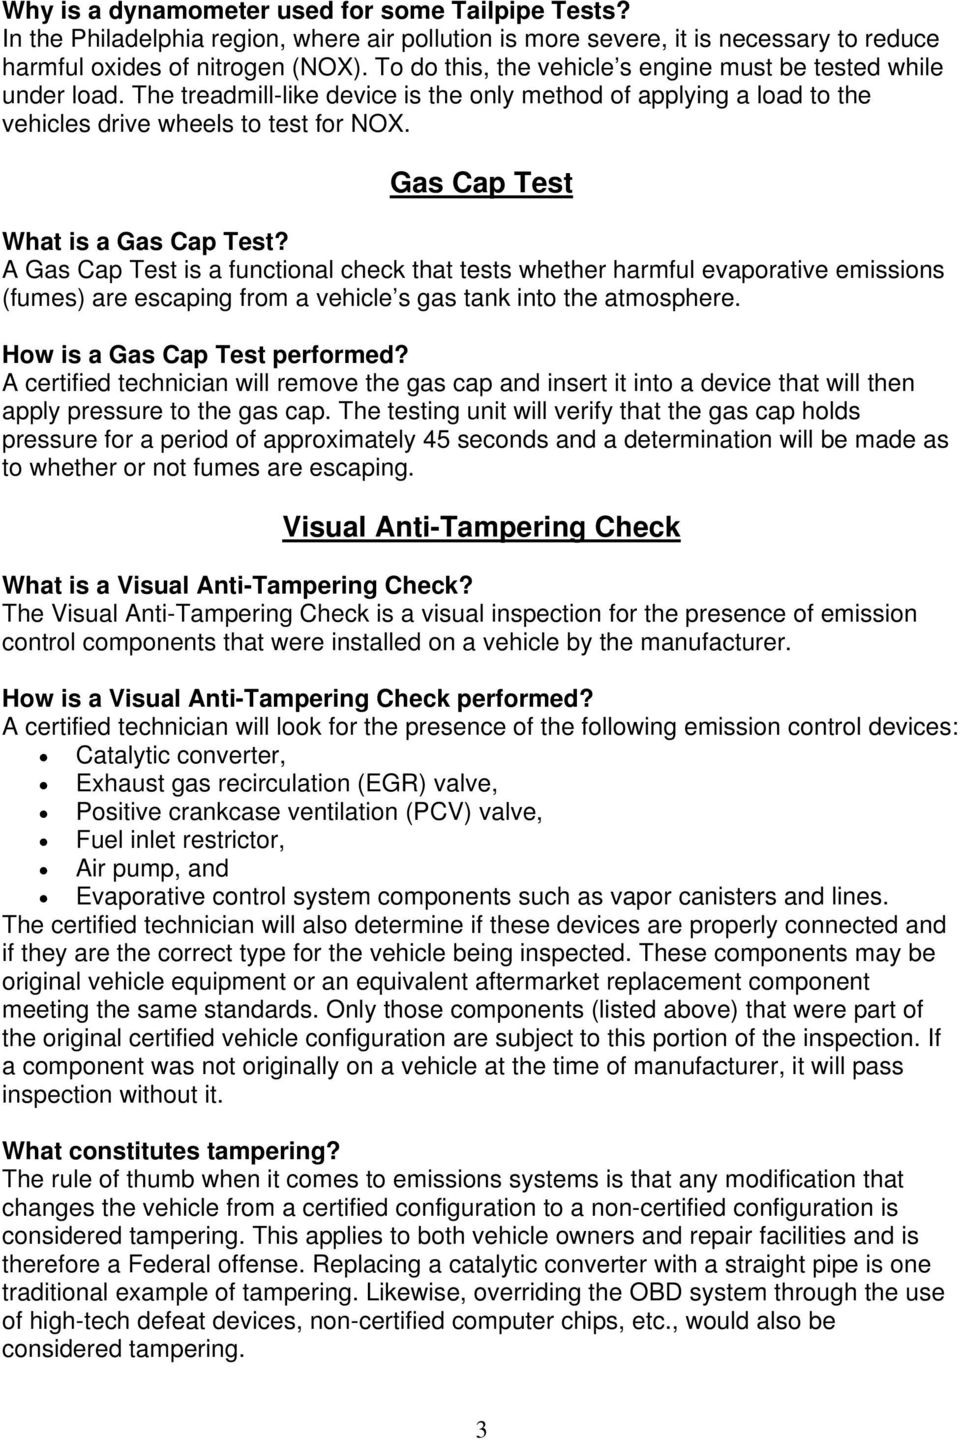 Gas Cap Test What is a Gas Cap Test? A Gas Cap Test is a functional check that tests whether harmful evaporative emissions (fumes) are escaping from a vehicle s gas tank into the atmosphere.